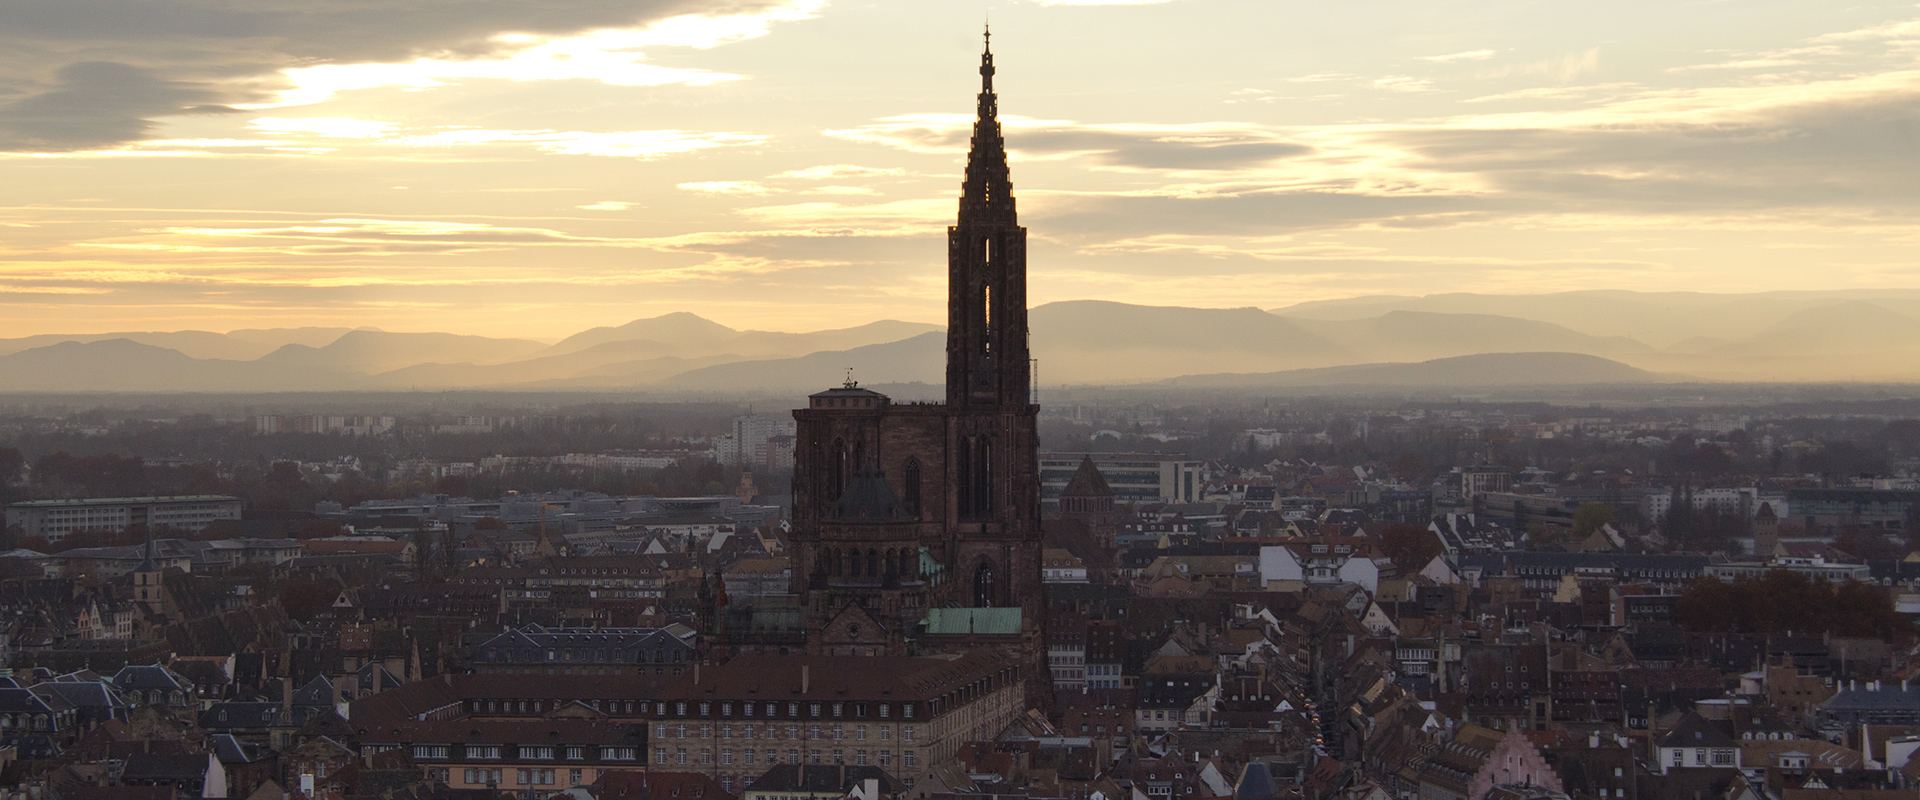 There's more to Strasbourg than Christmas